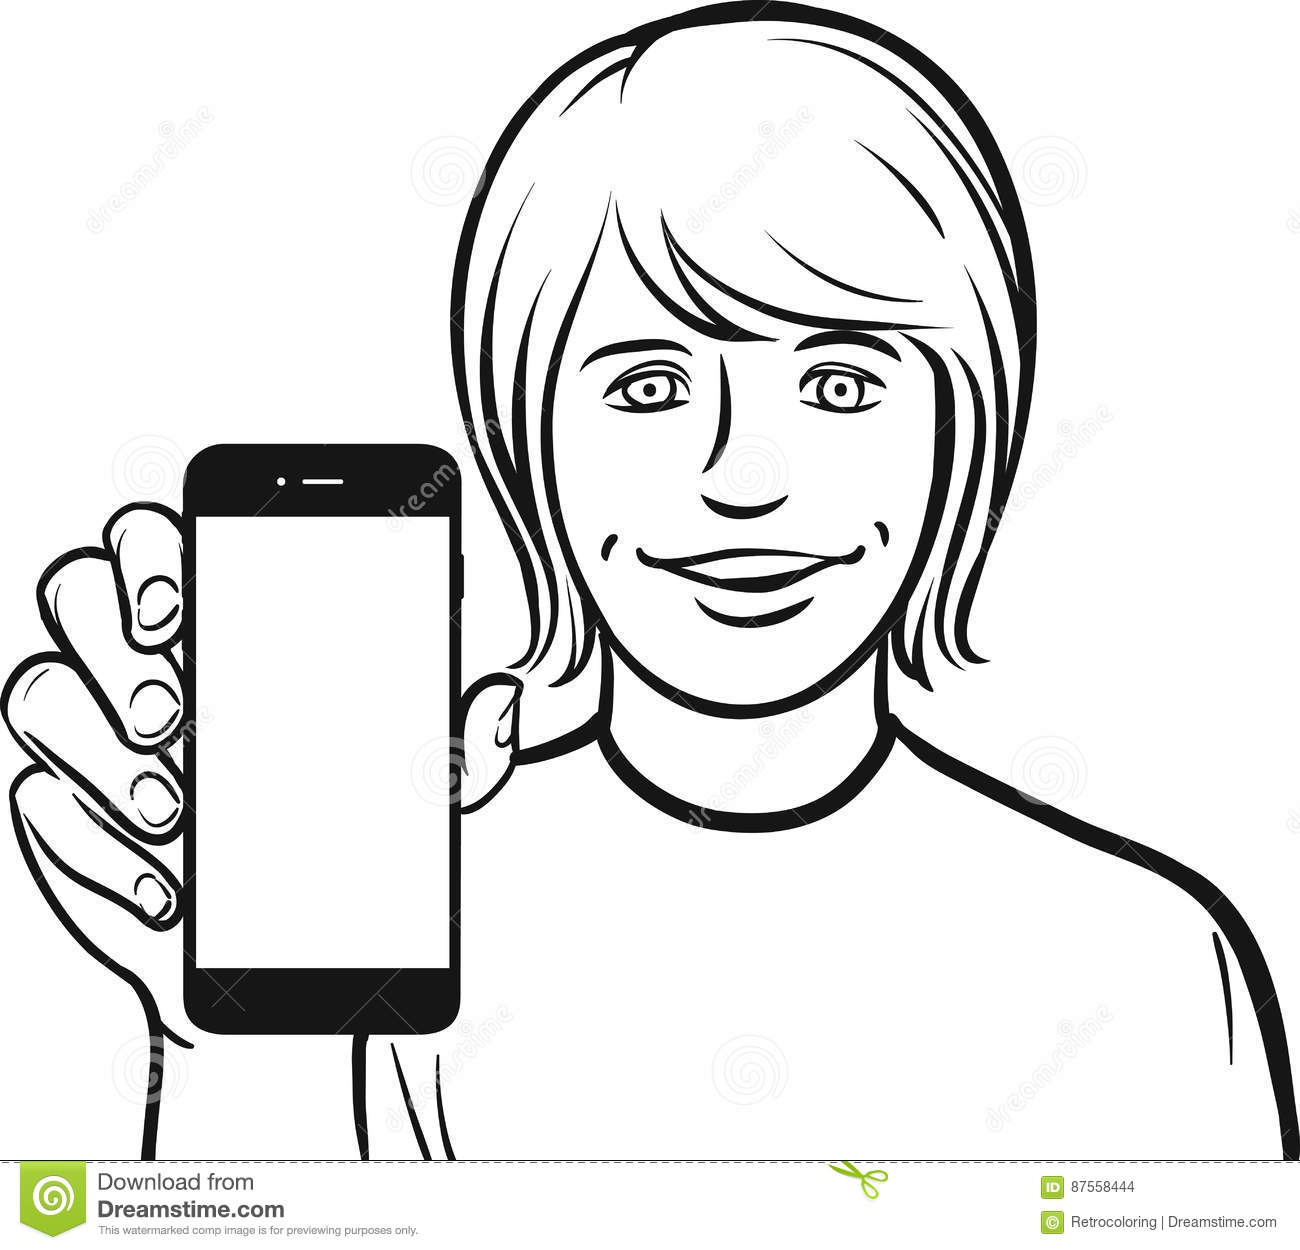 Black face app - Line Drawing Of A White Student Showing A Mobile App On A Smart